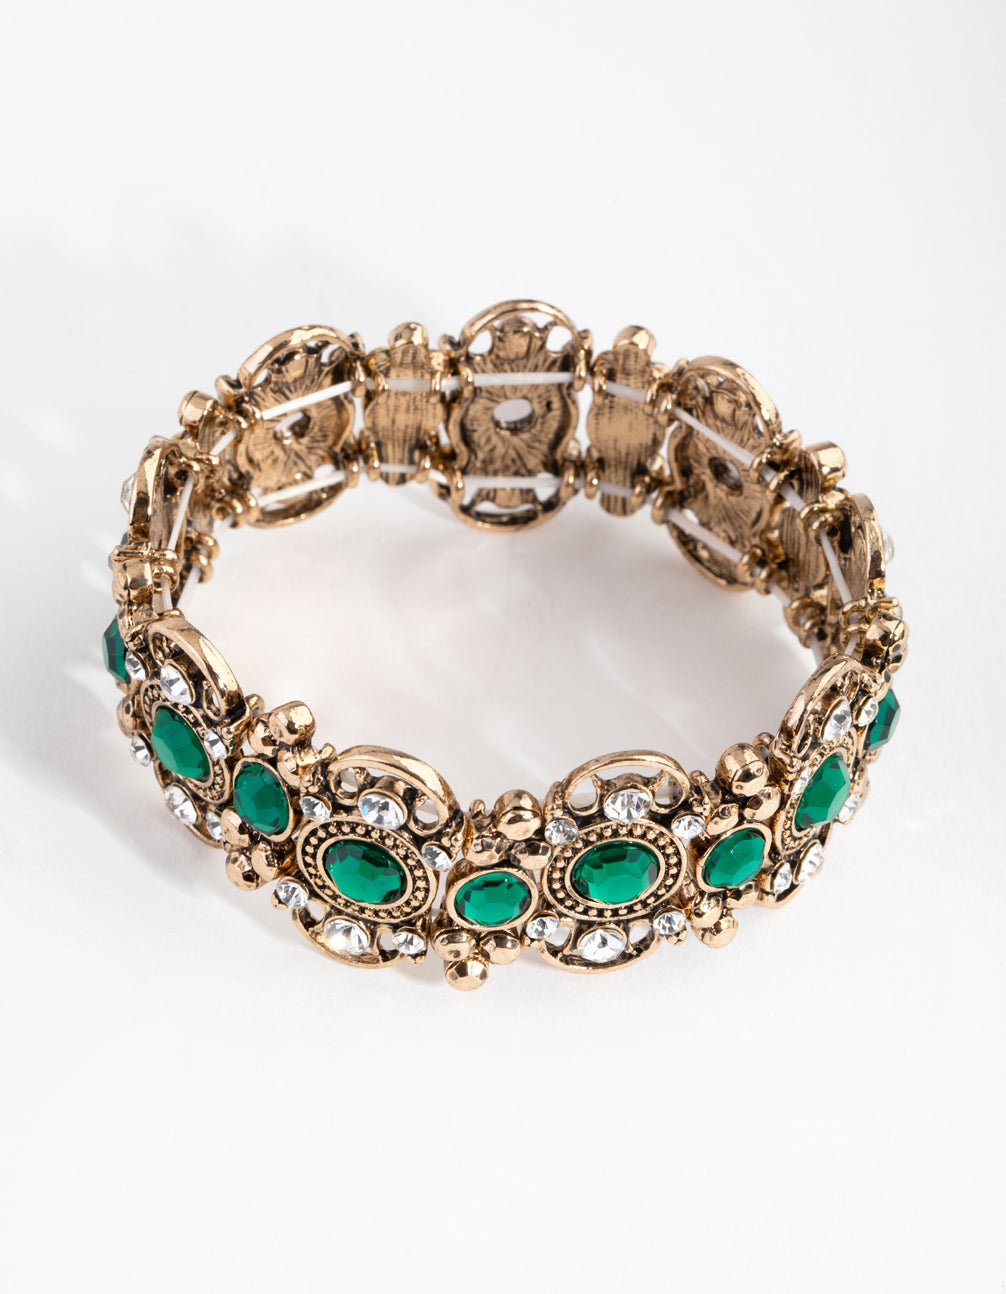 Antique Gold Filigree Stone Stretch Bracelet